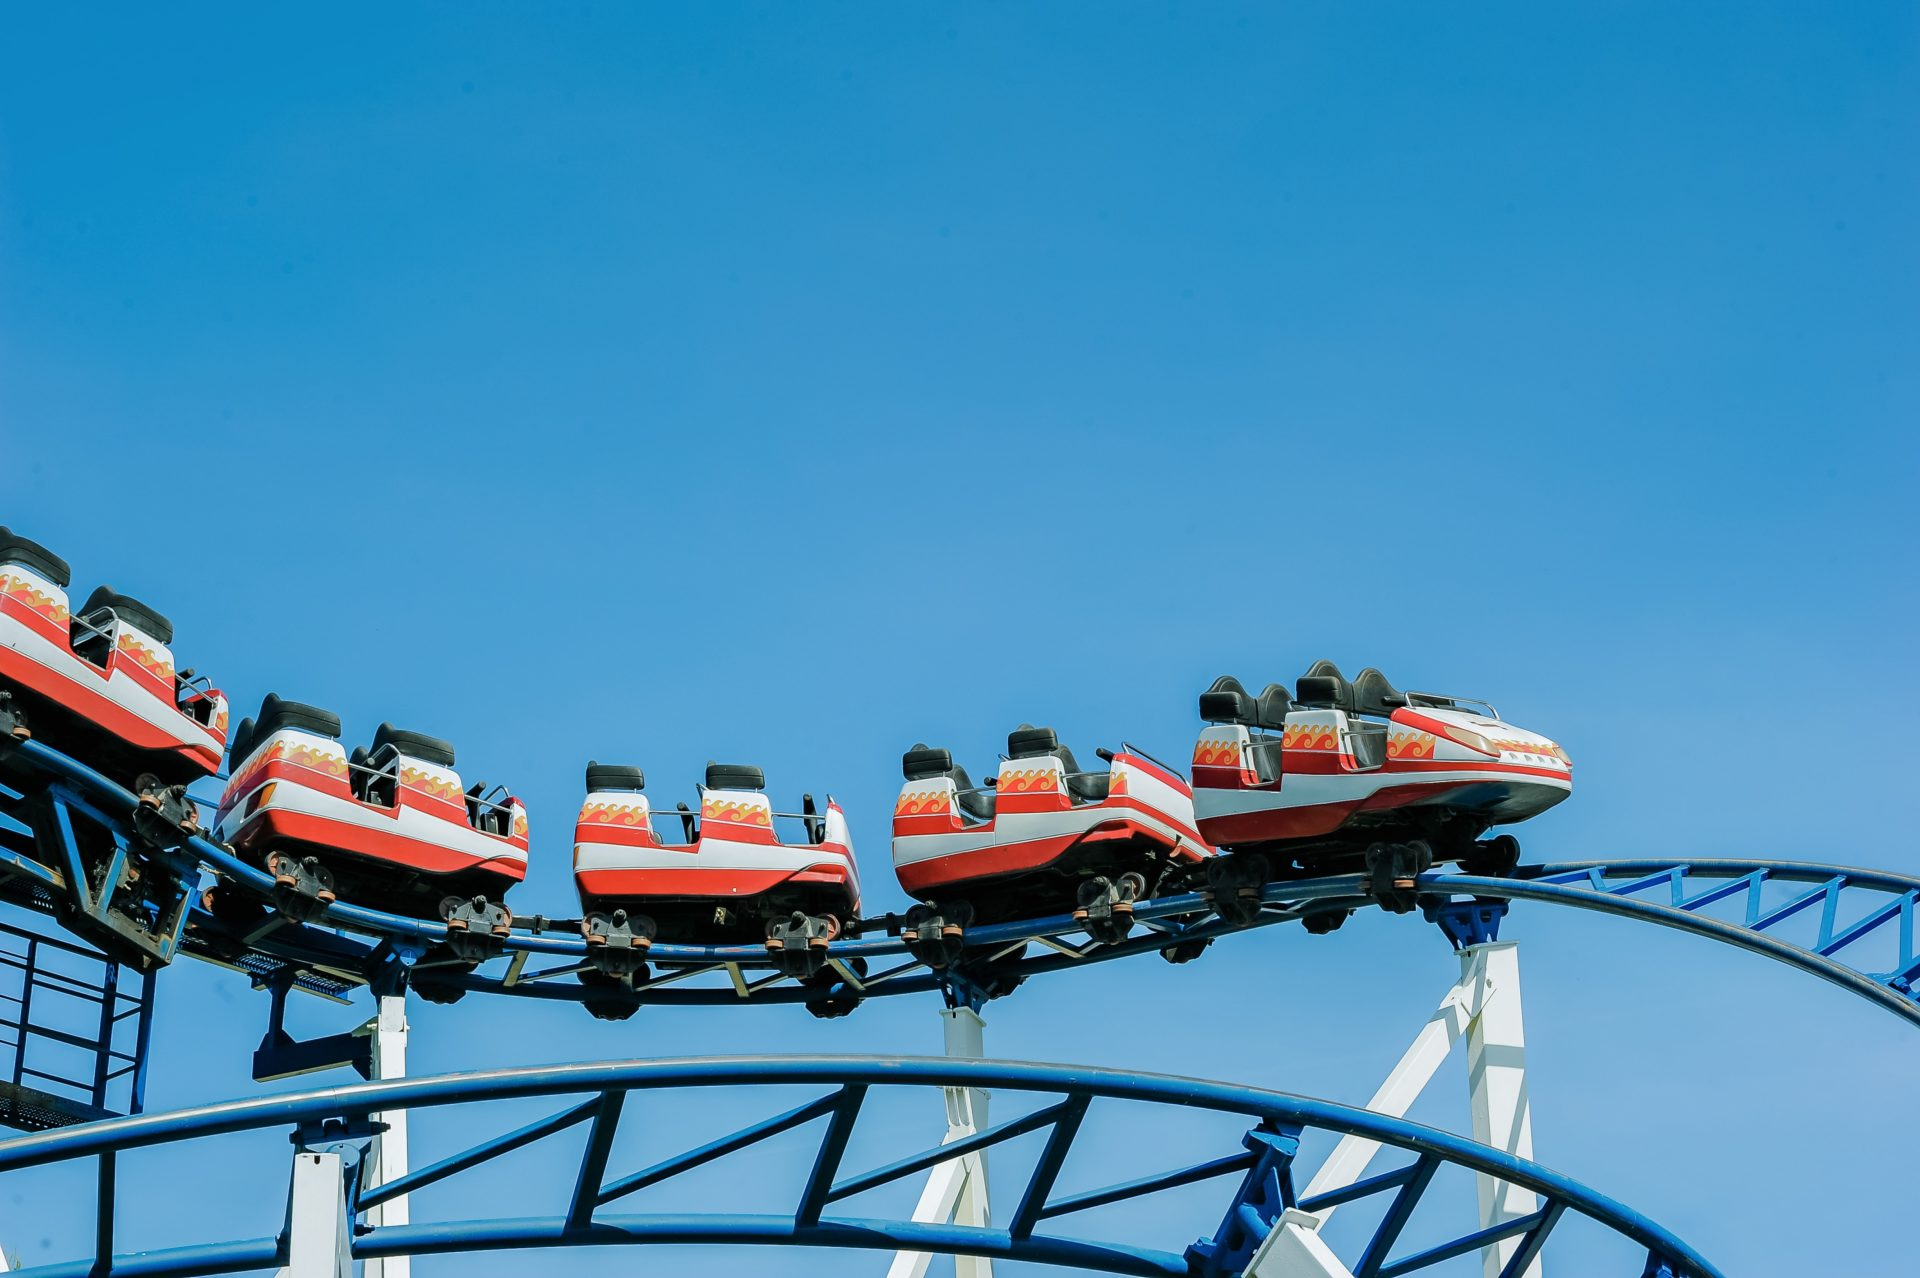 Video: Dealing with the rollercoaster to stay happily productive